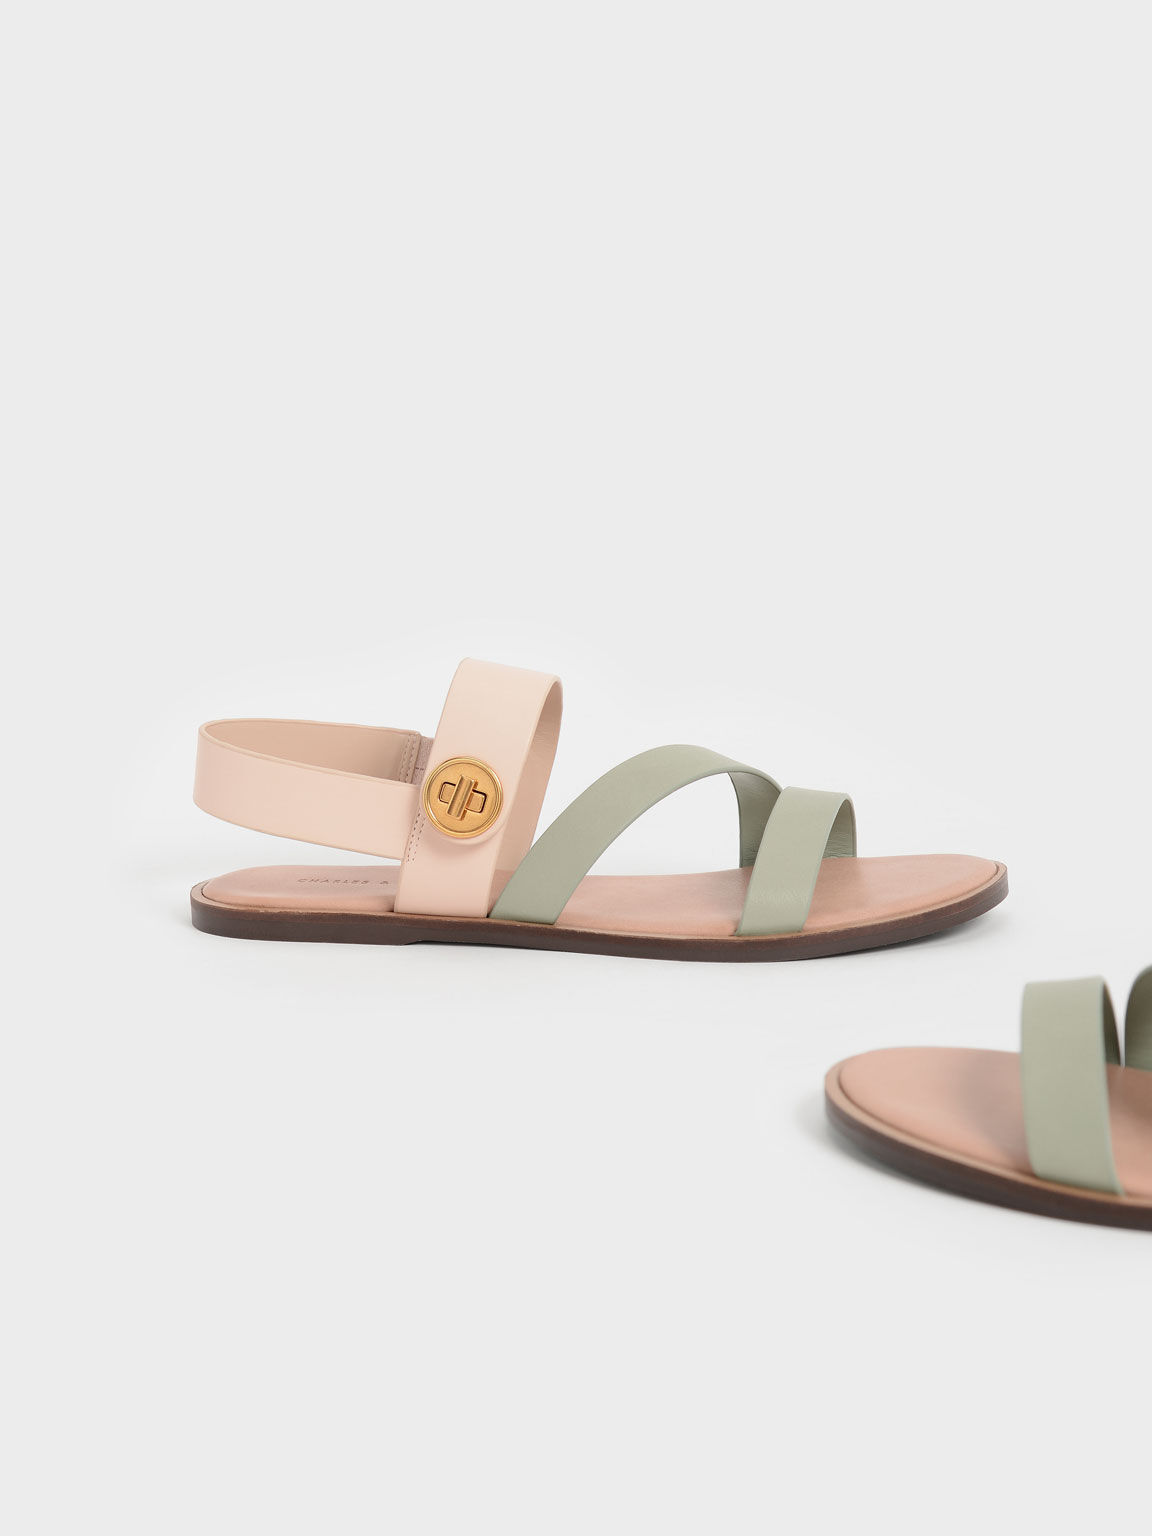 Two-Tone Asymmetric Strappy Sandals, Nude, hi-res